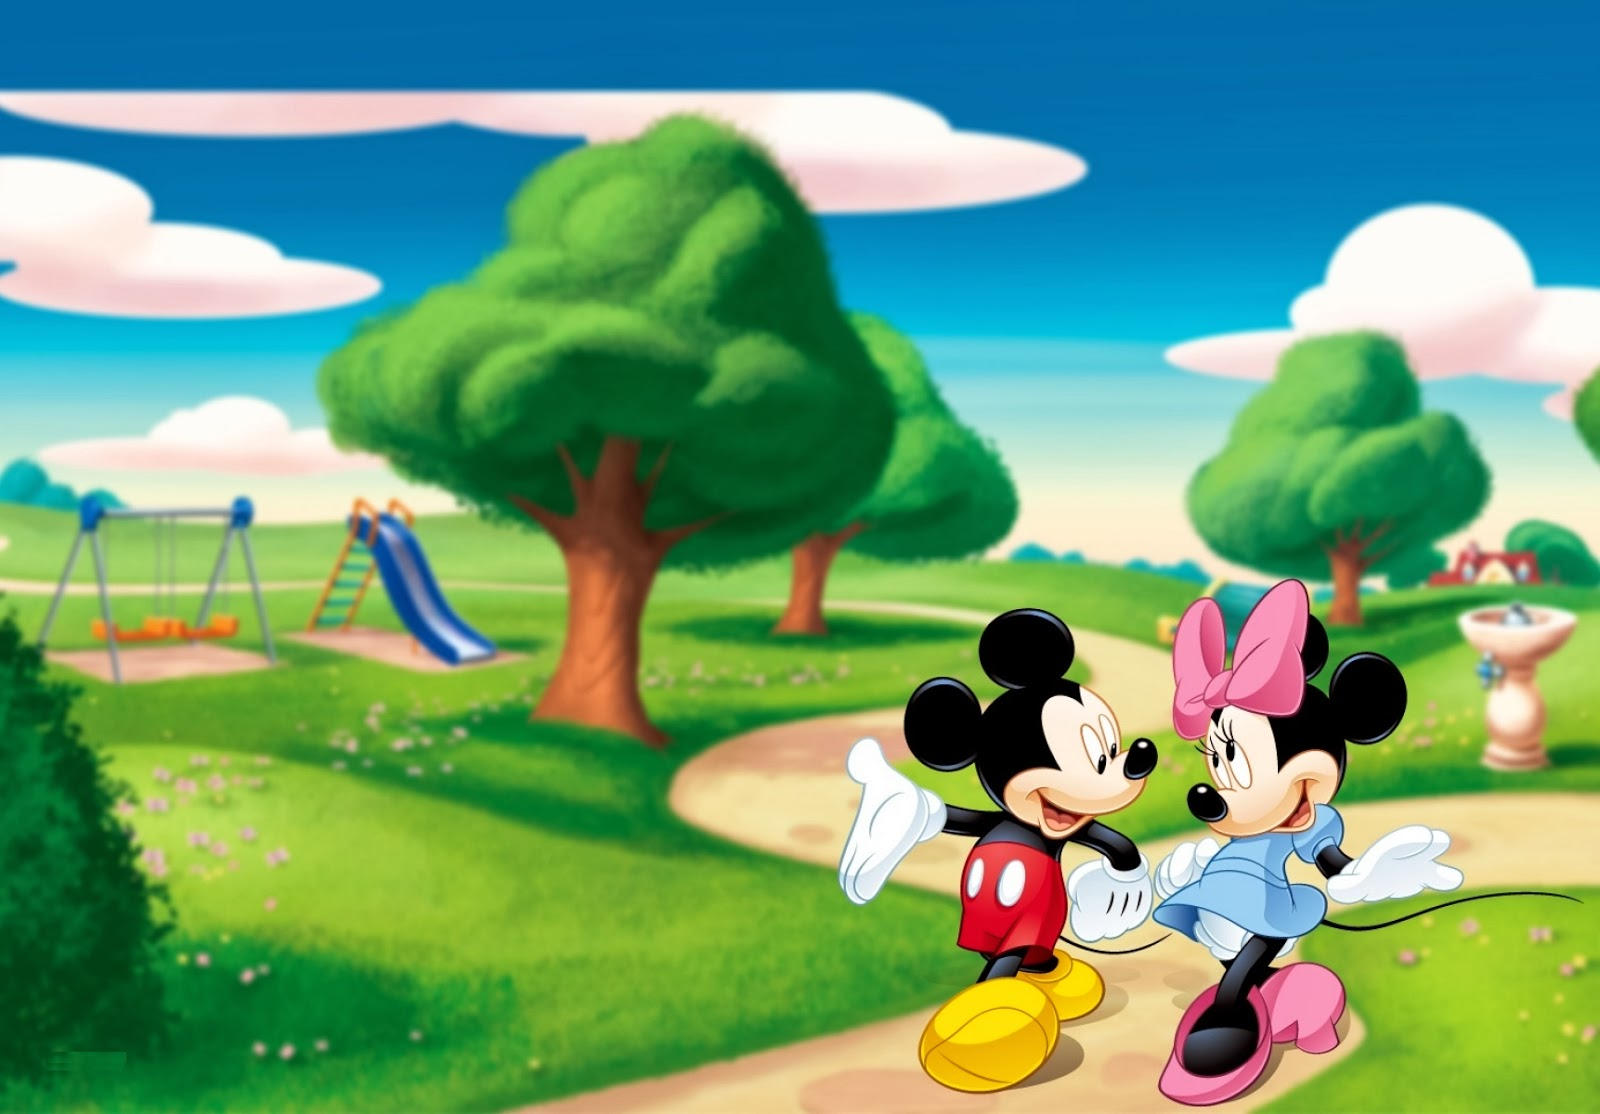 Minnie Mouse Wallpaper For Android Mickey And Minnie Mouse